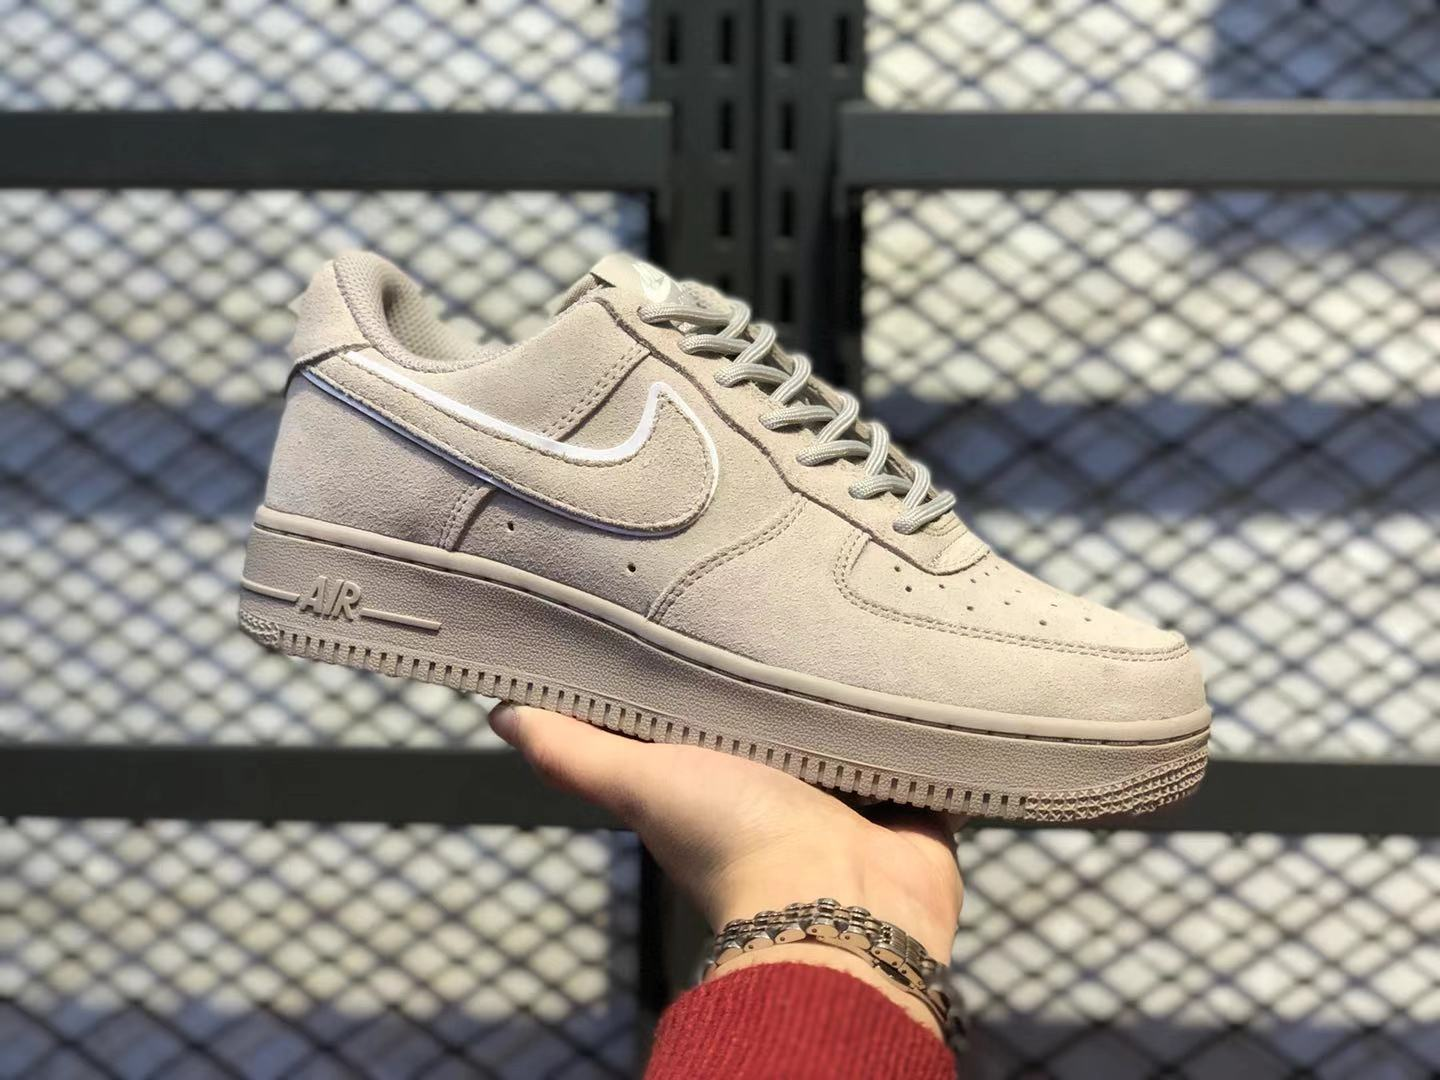 Nike Air Force 1'07 Moon Particle/Sepia Stone Suede Shoes AA1117-201 Cheap Sale